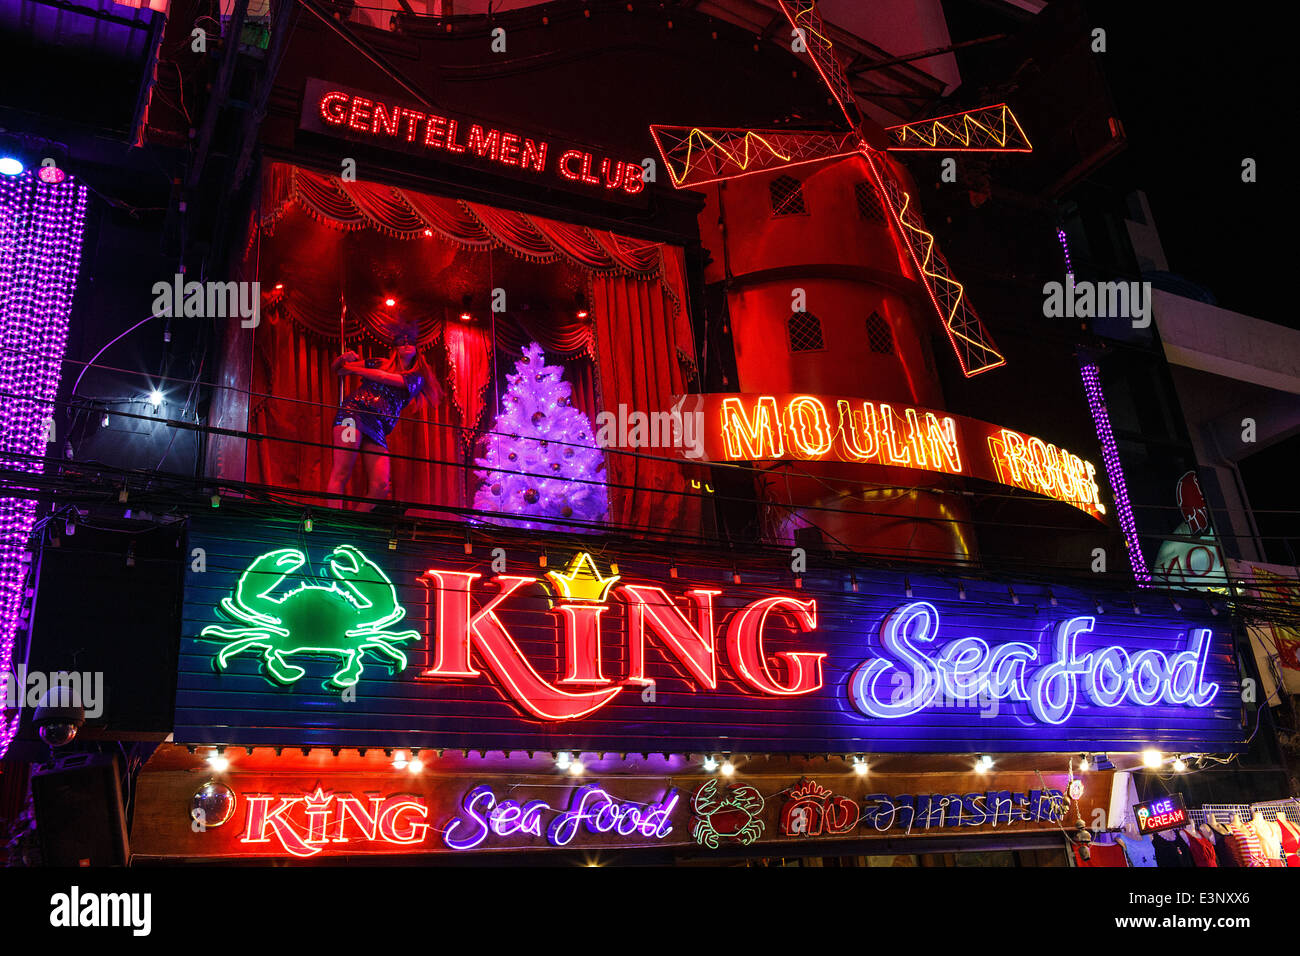 A nightclub go-go bar catering to Russians on Walking Street in Pattaya, Thailand - Stock Image